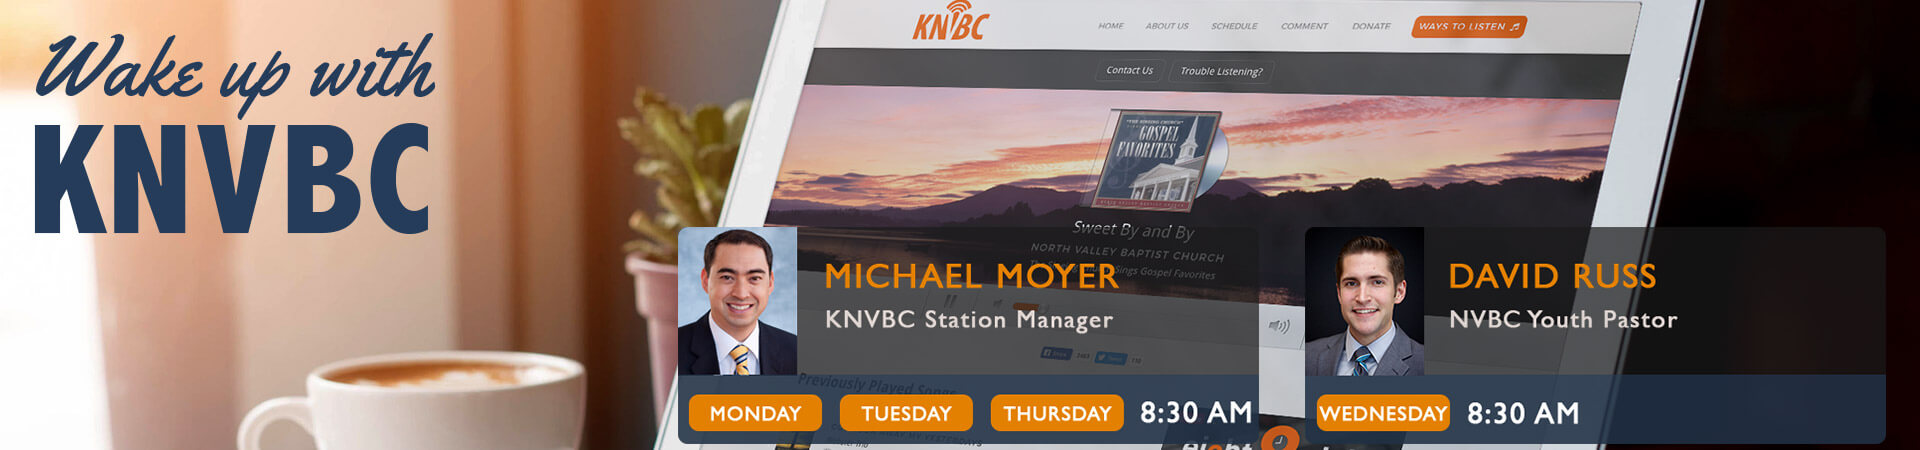 Wake up with KNVBC